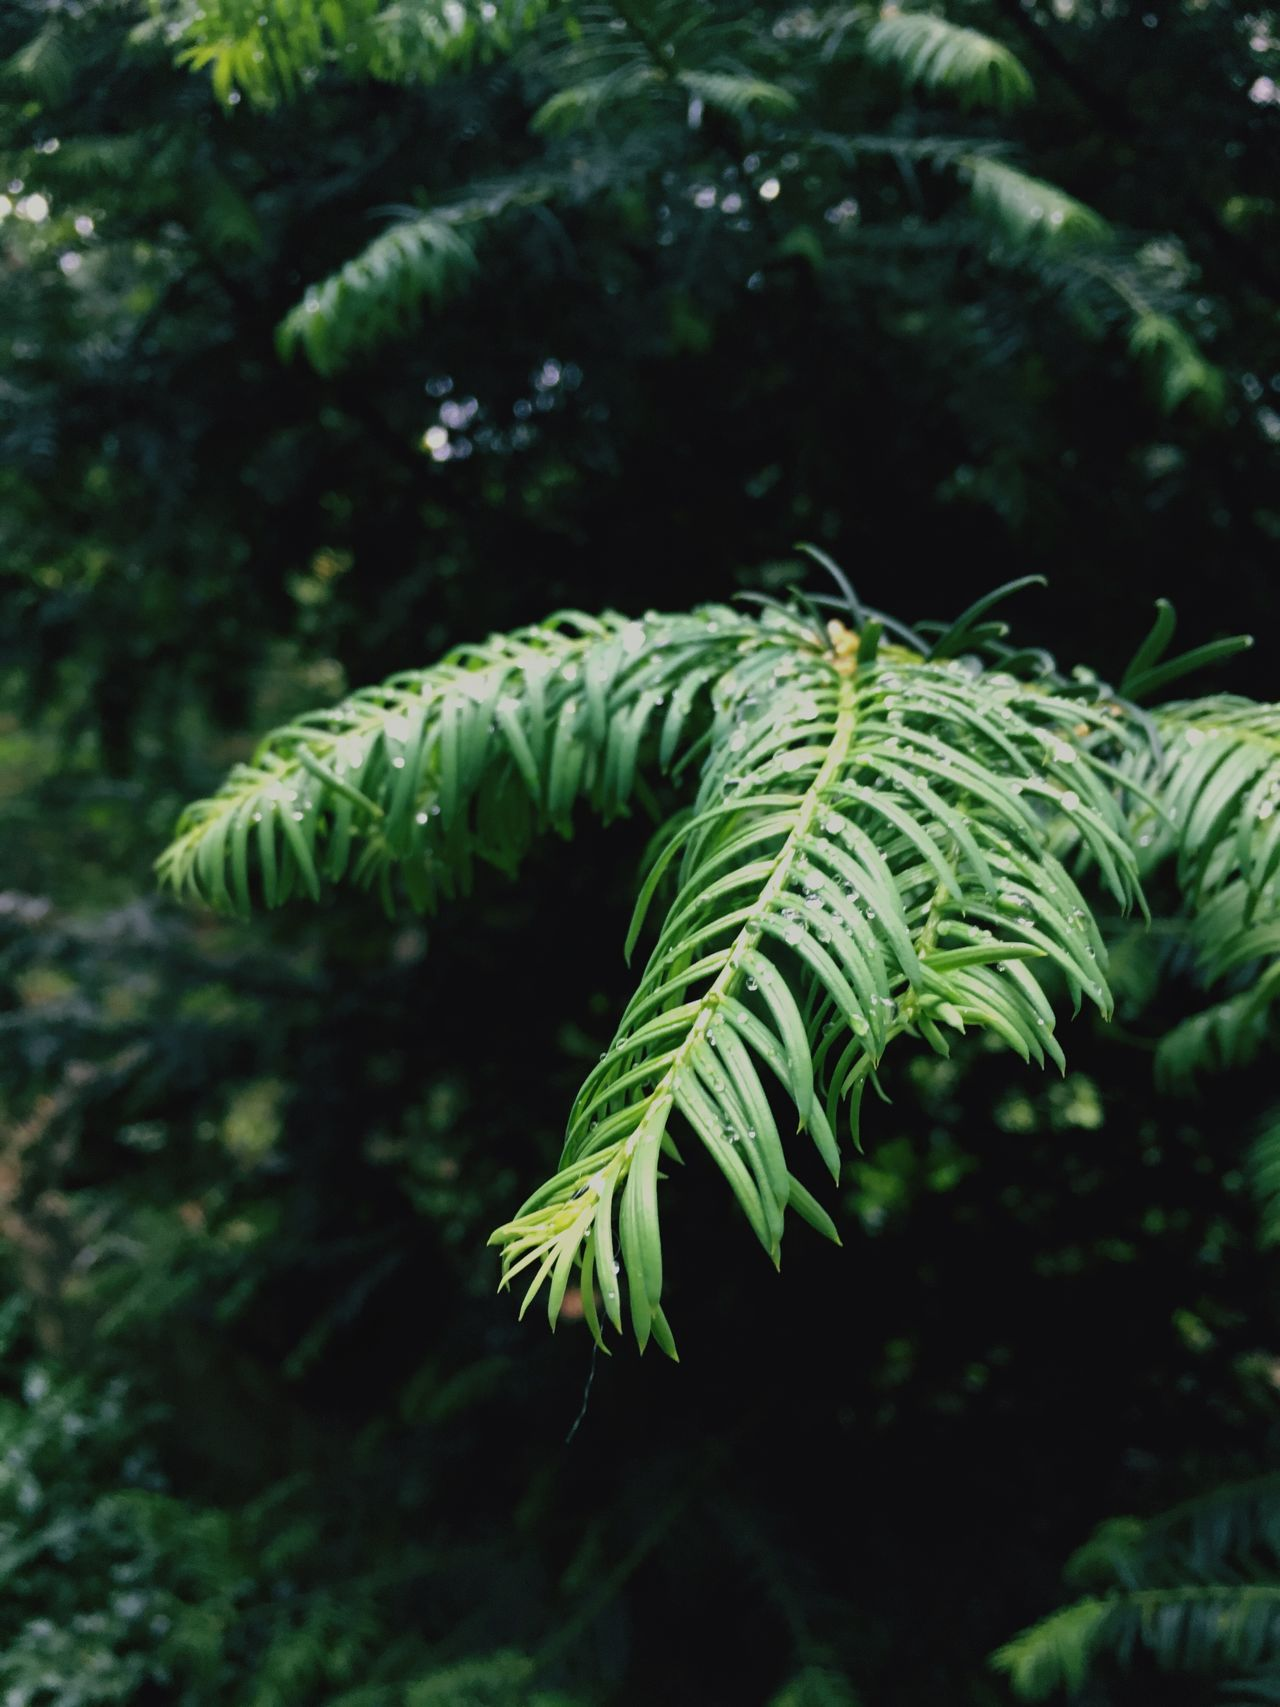 Rain Forrest // iPhone 6s // Green Color Nature Leaf Fern Growth No People Focus On Foreground Close-up Plant Tree Outdoors Beauty In Nature Fragility Freshness Summer This Week On Eyeem IPhoneography Iphone6s Rain Water Water Droplets ShotoniPhone6s The Great Outdoors - 2017 EyeEm Awards Fresh on Market 2017